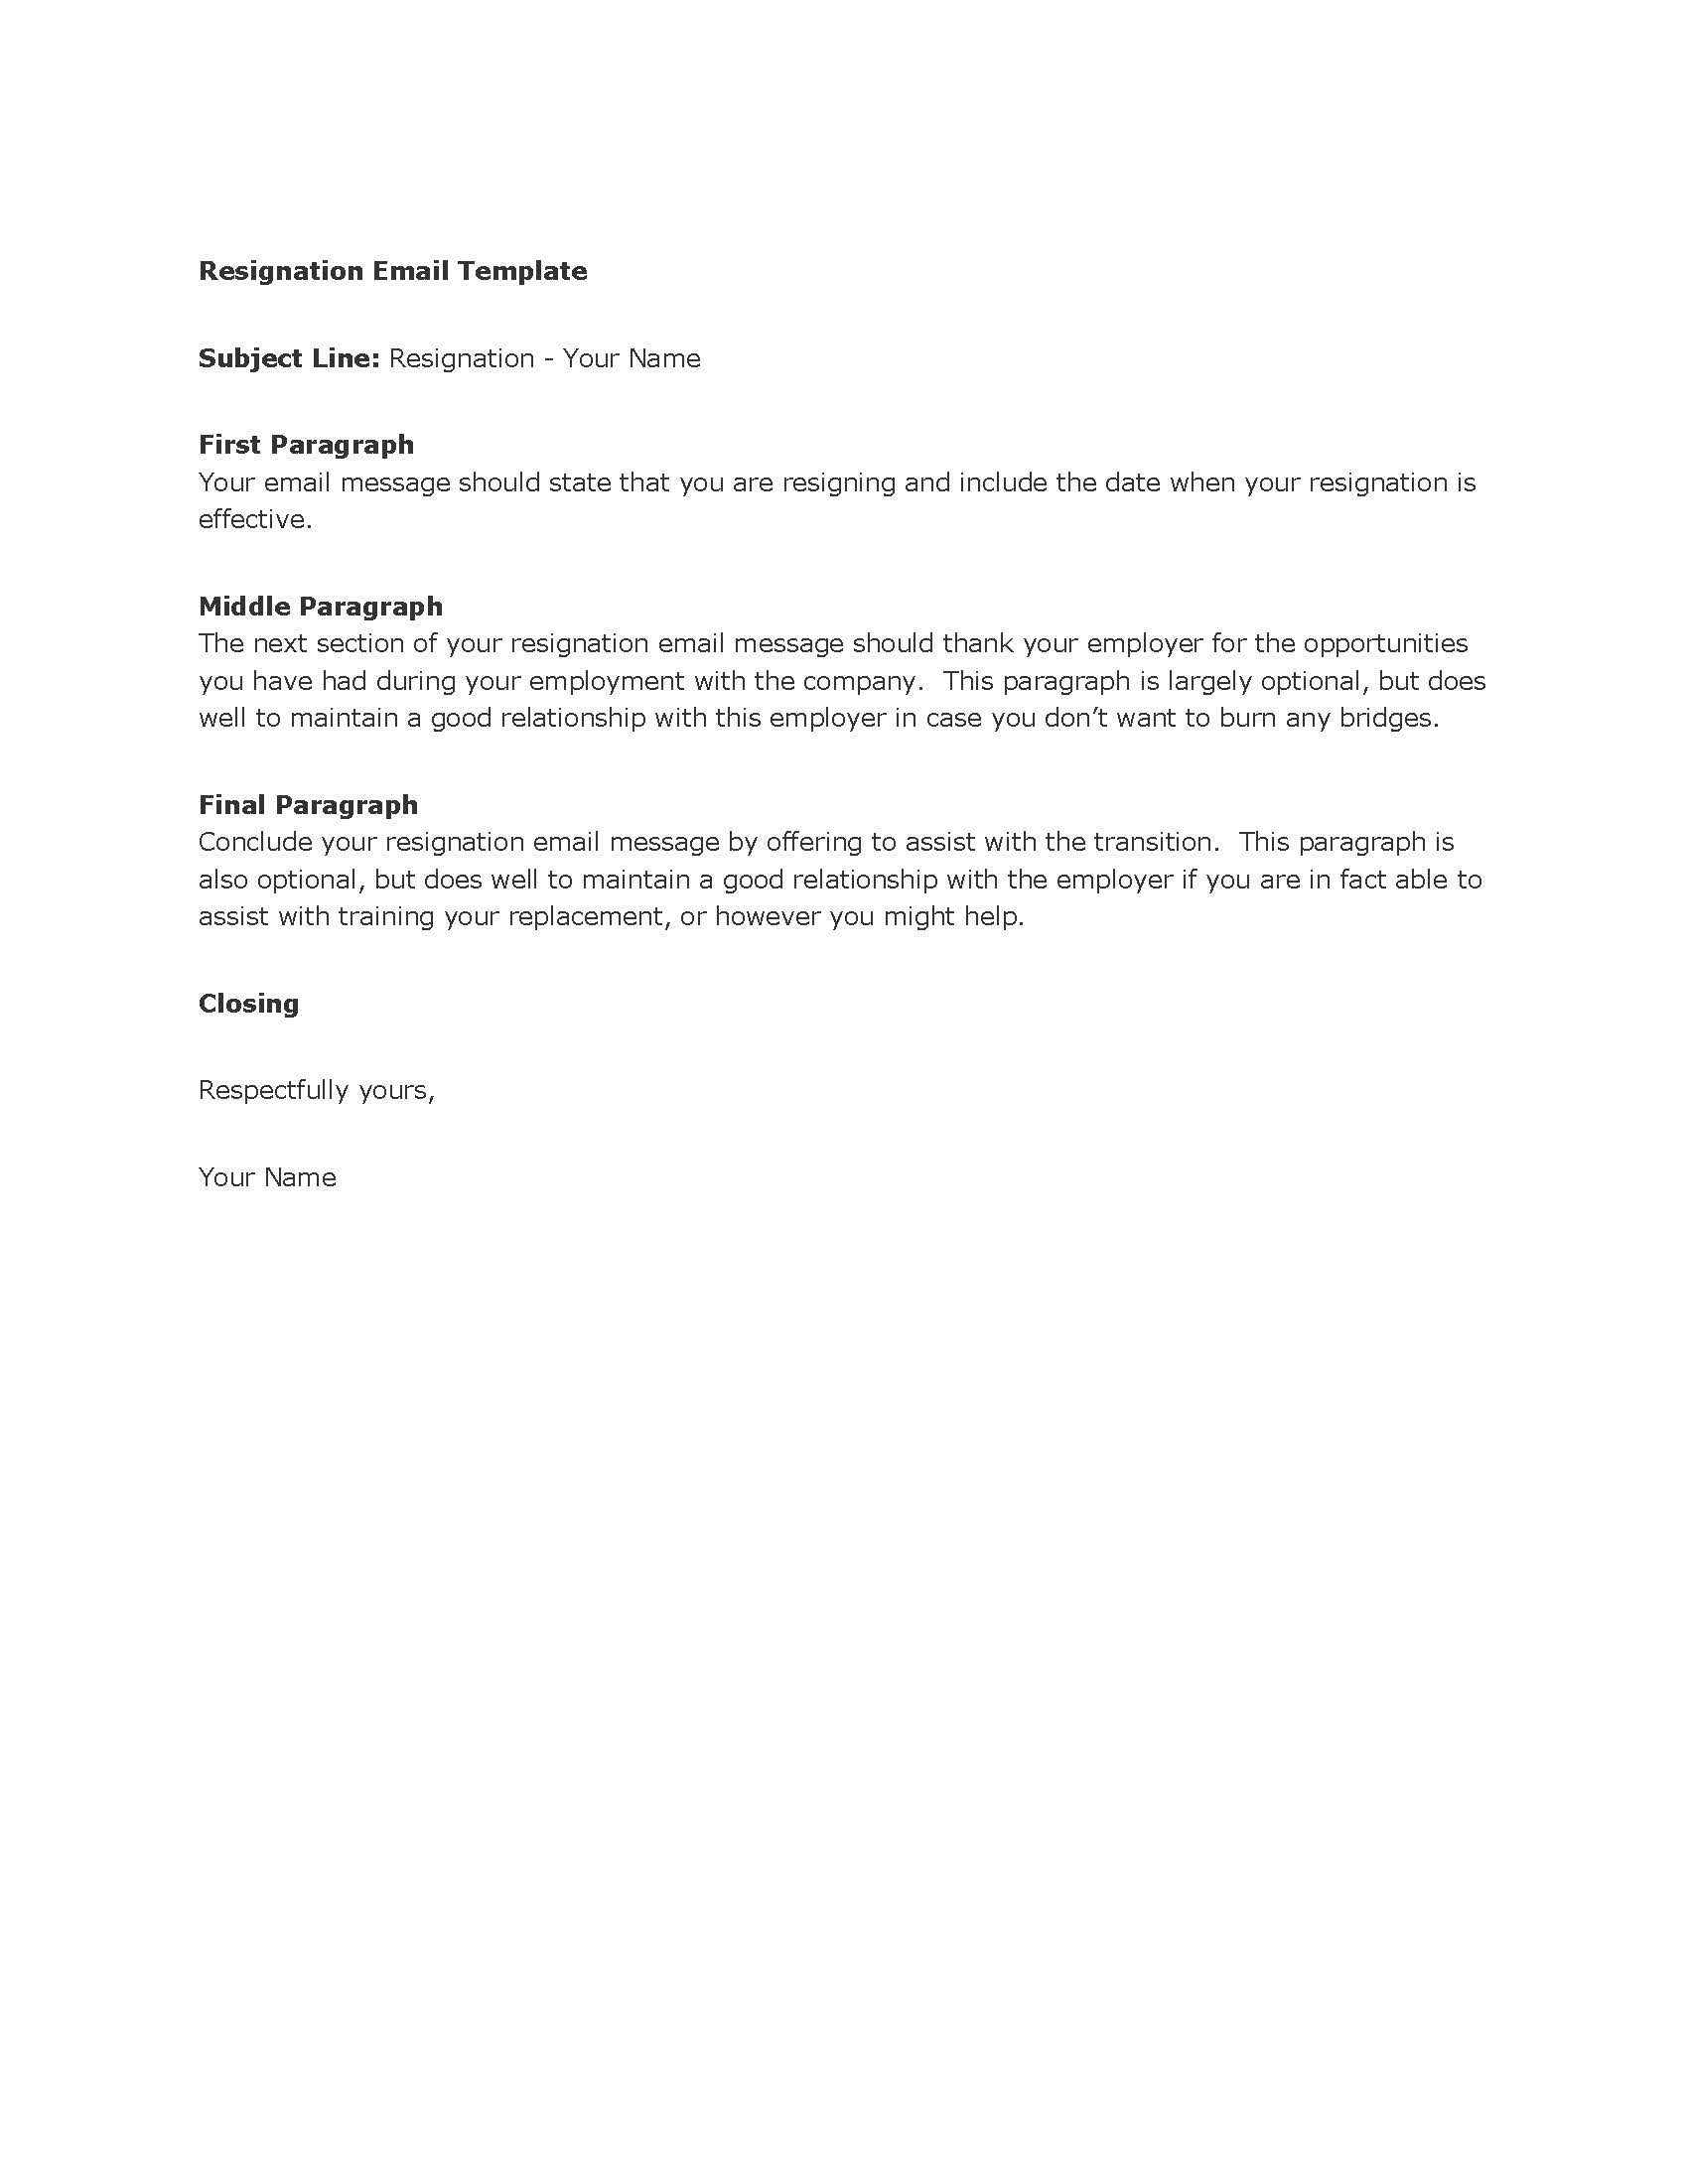 Template Resignation Email Business Email TemplateWriting A Letter ...